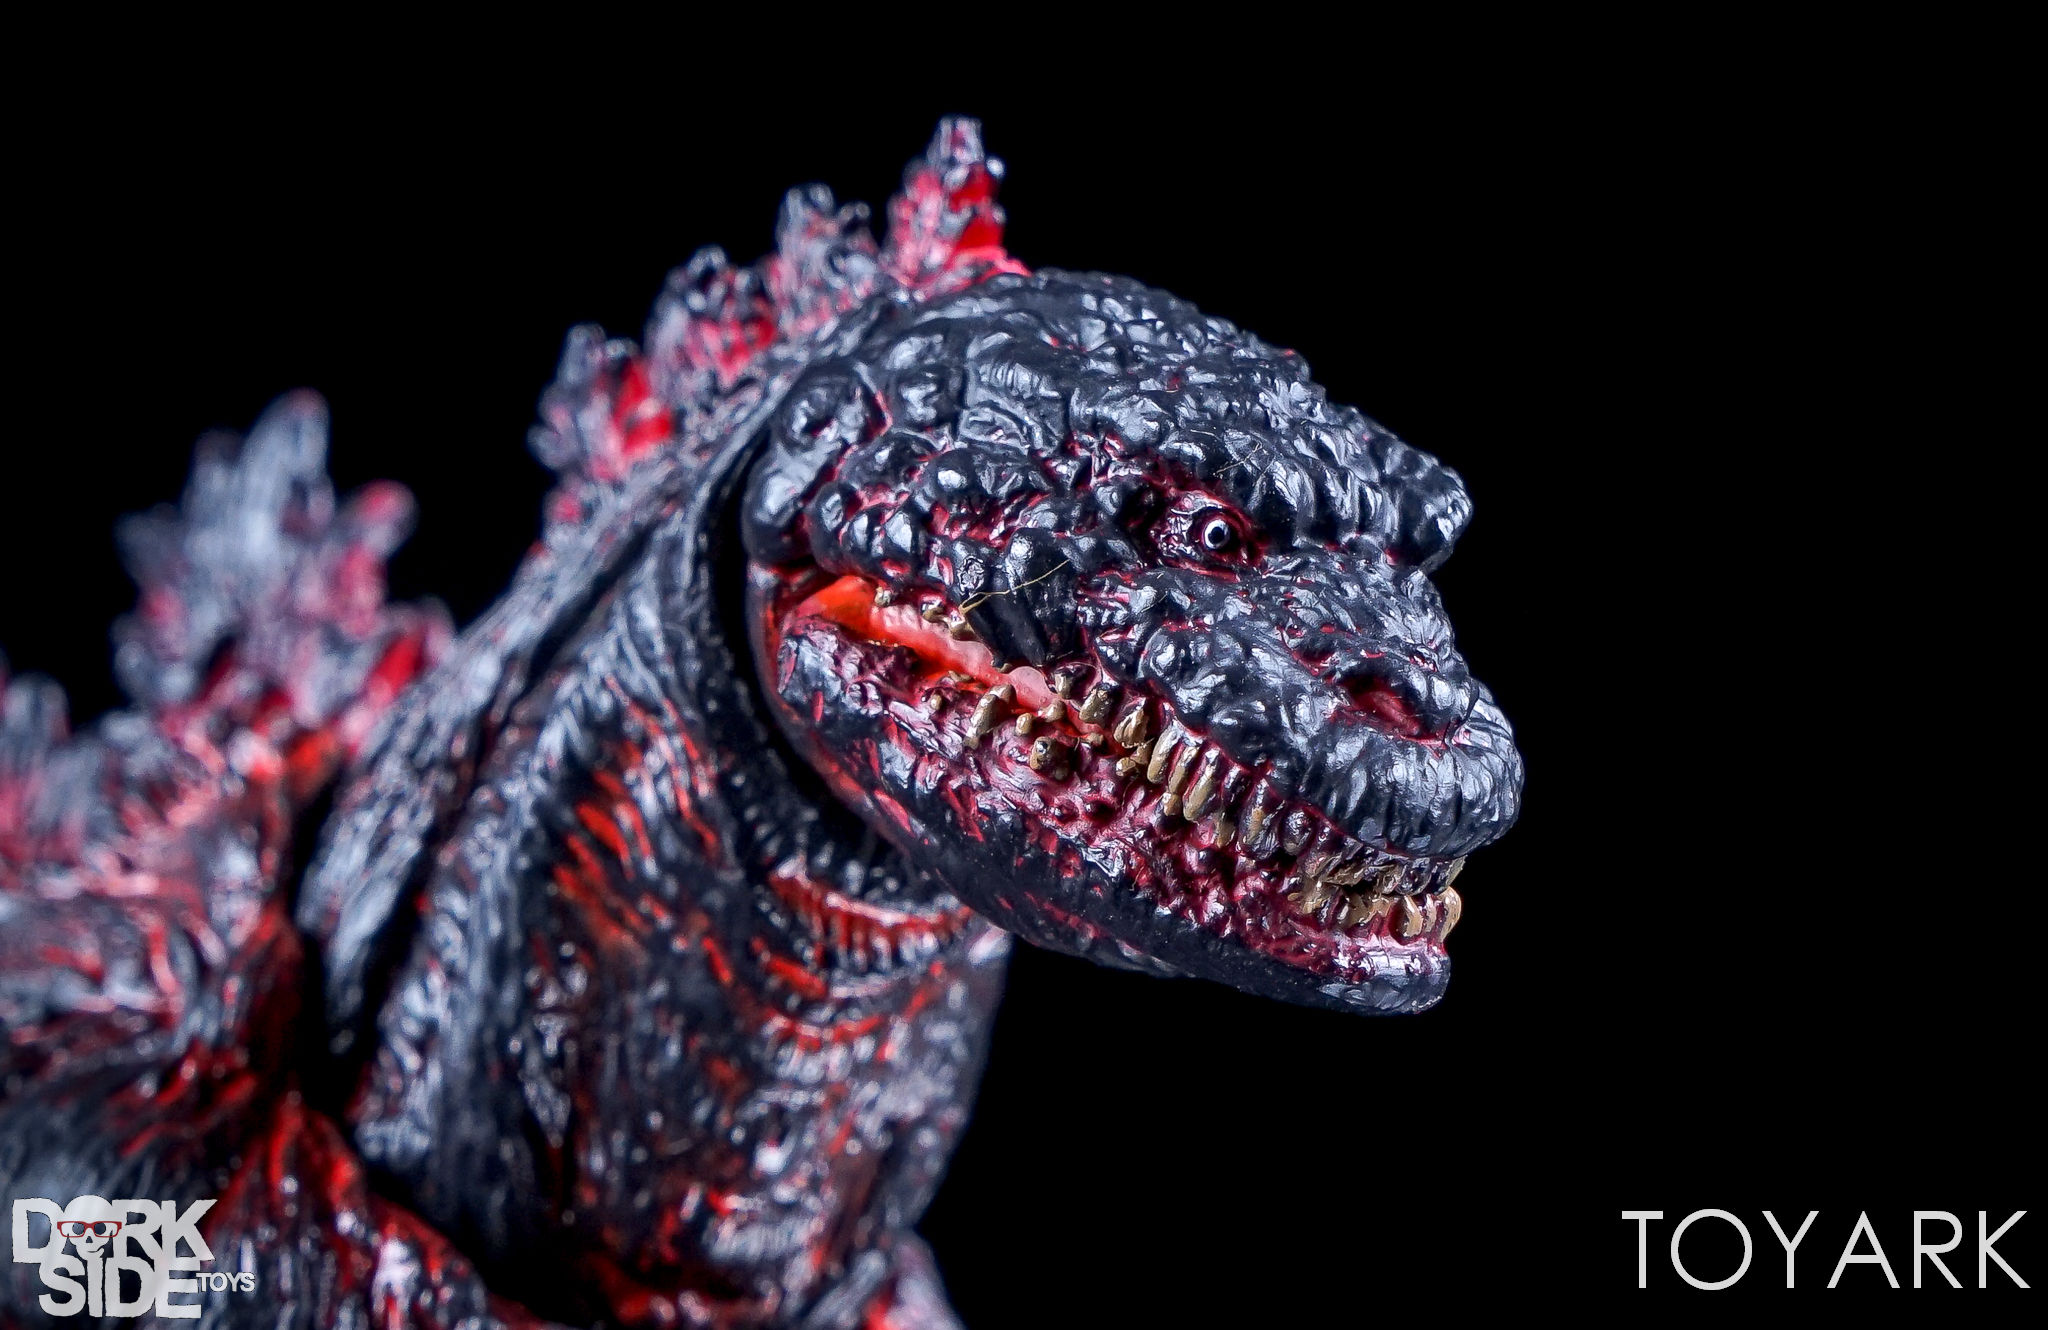 http://news.toyark.com/wp-content/uploads/sites/4/2017/05/Shin-Godzilla-Figure-NECA-007.jpg